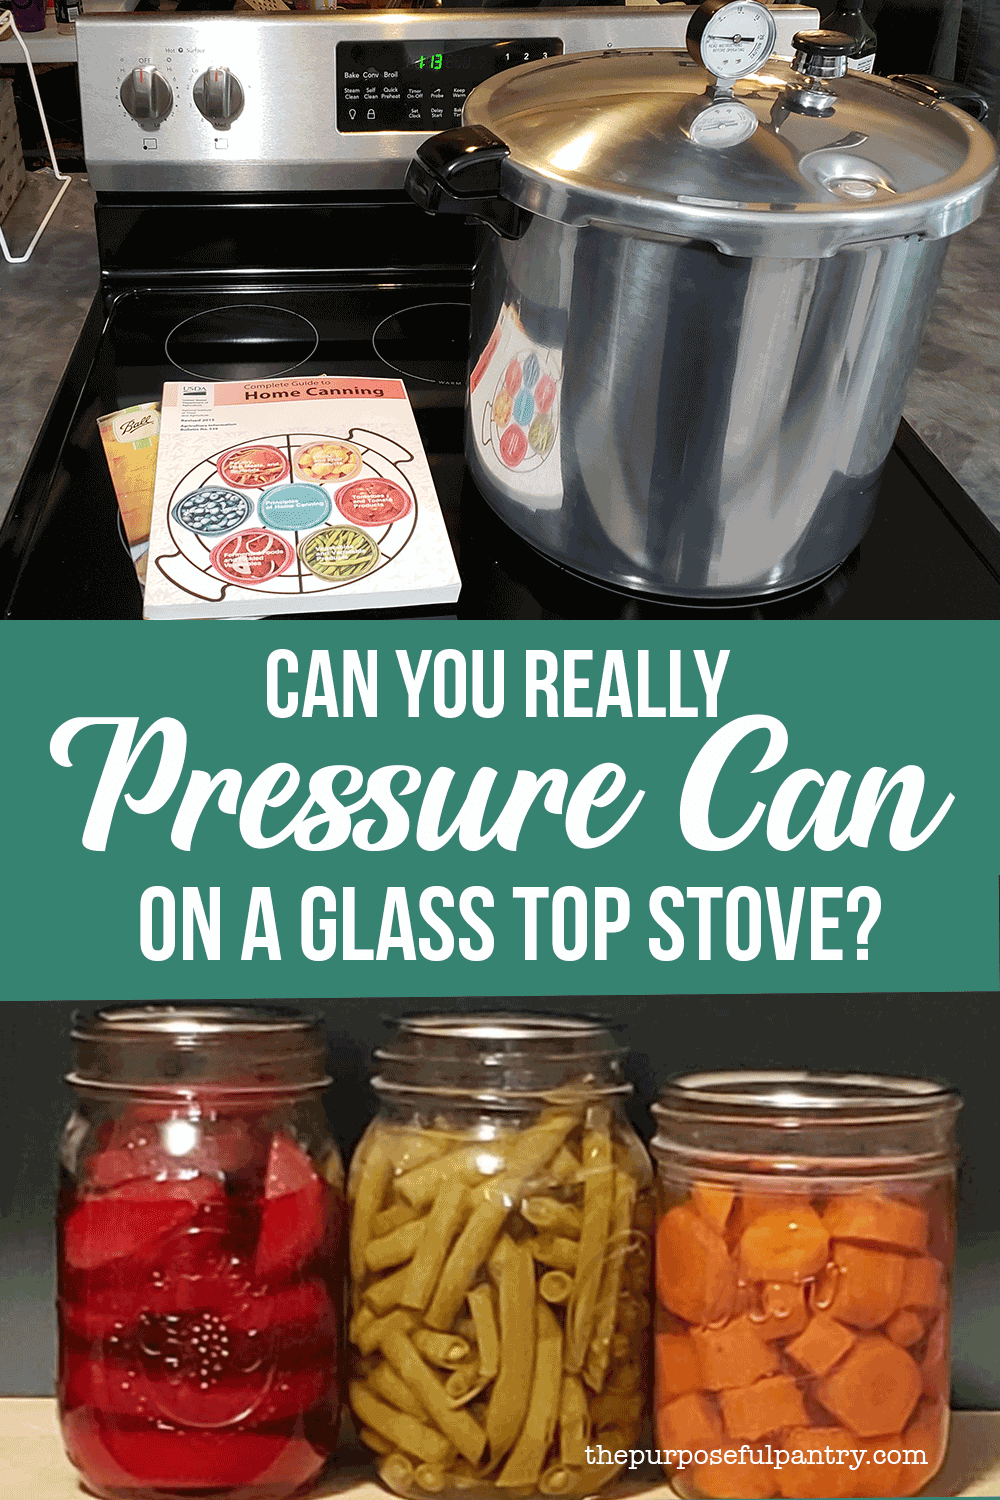 Can I Pressure Can On A Glass Stove Pressure Canning Canning